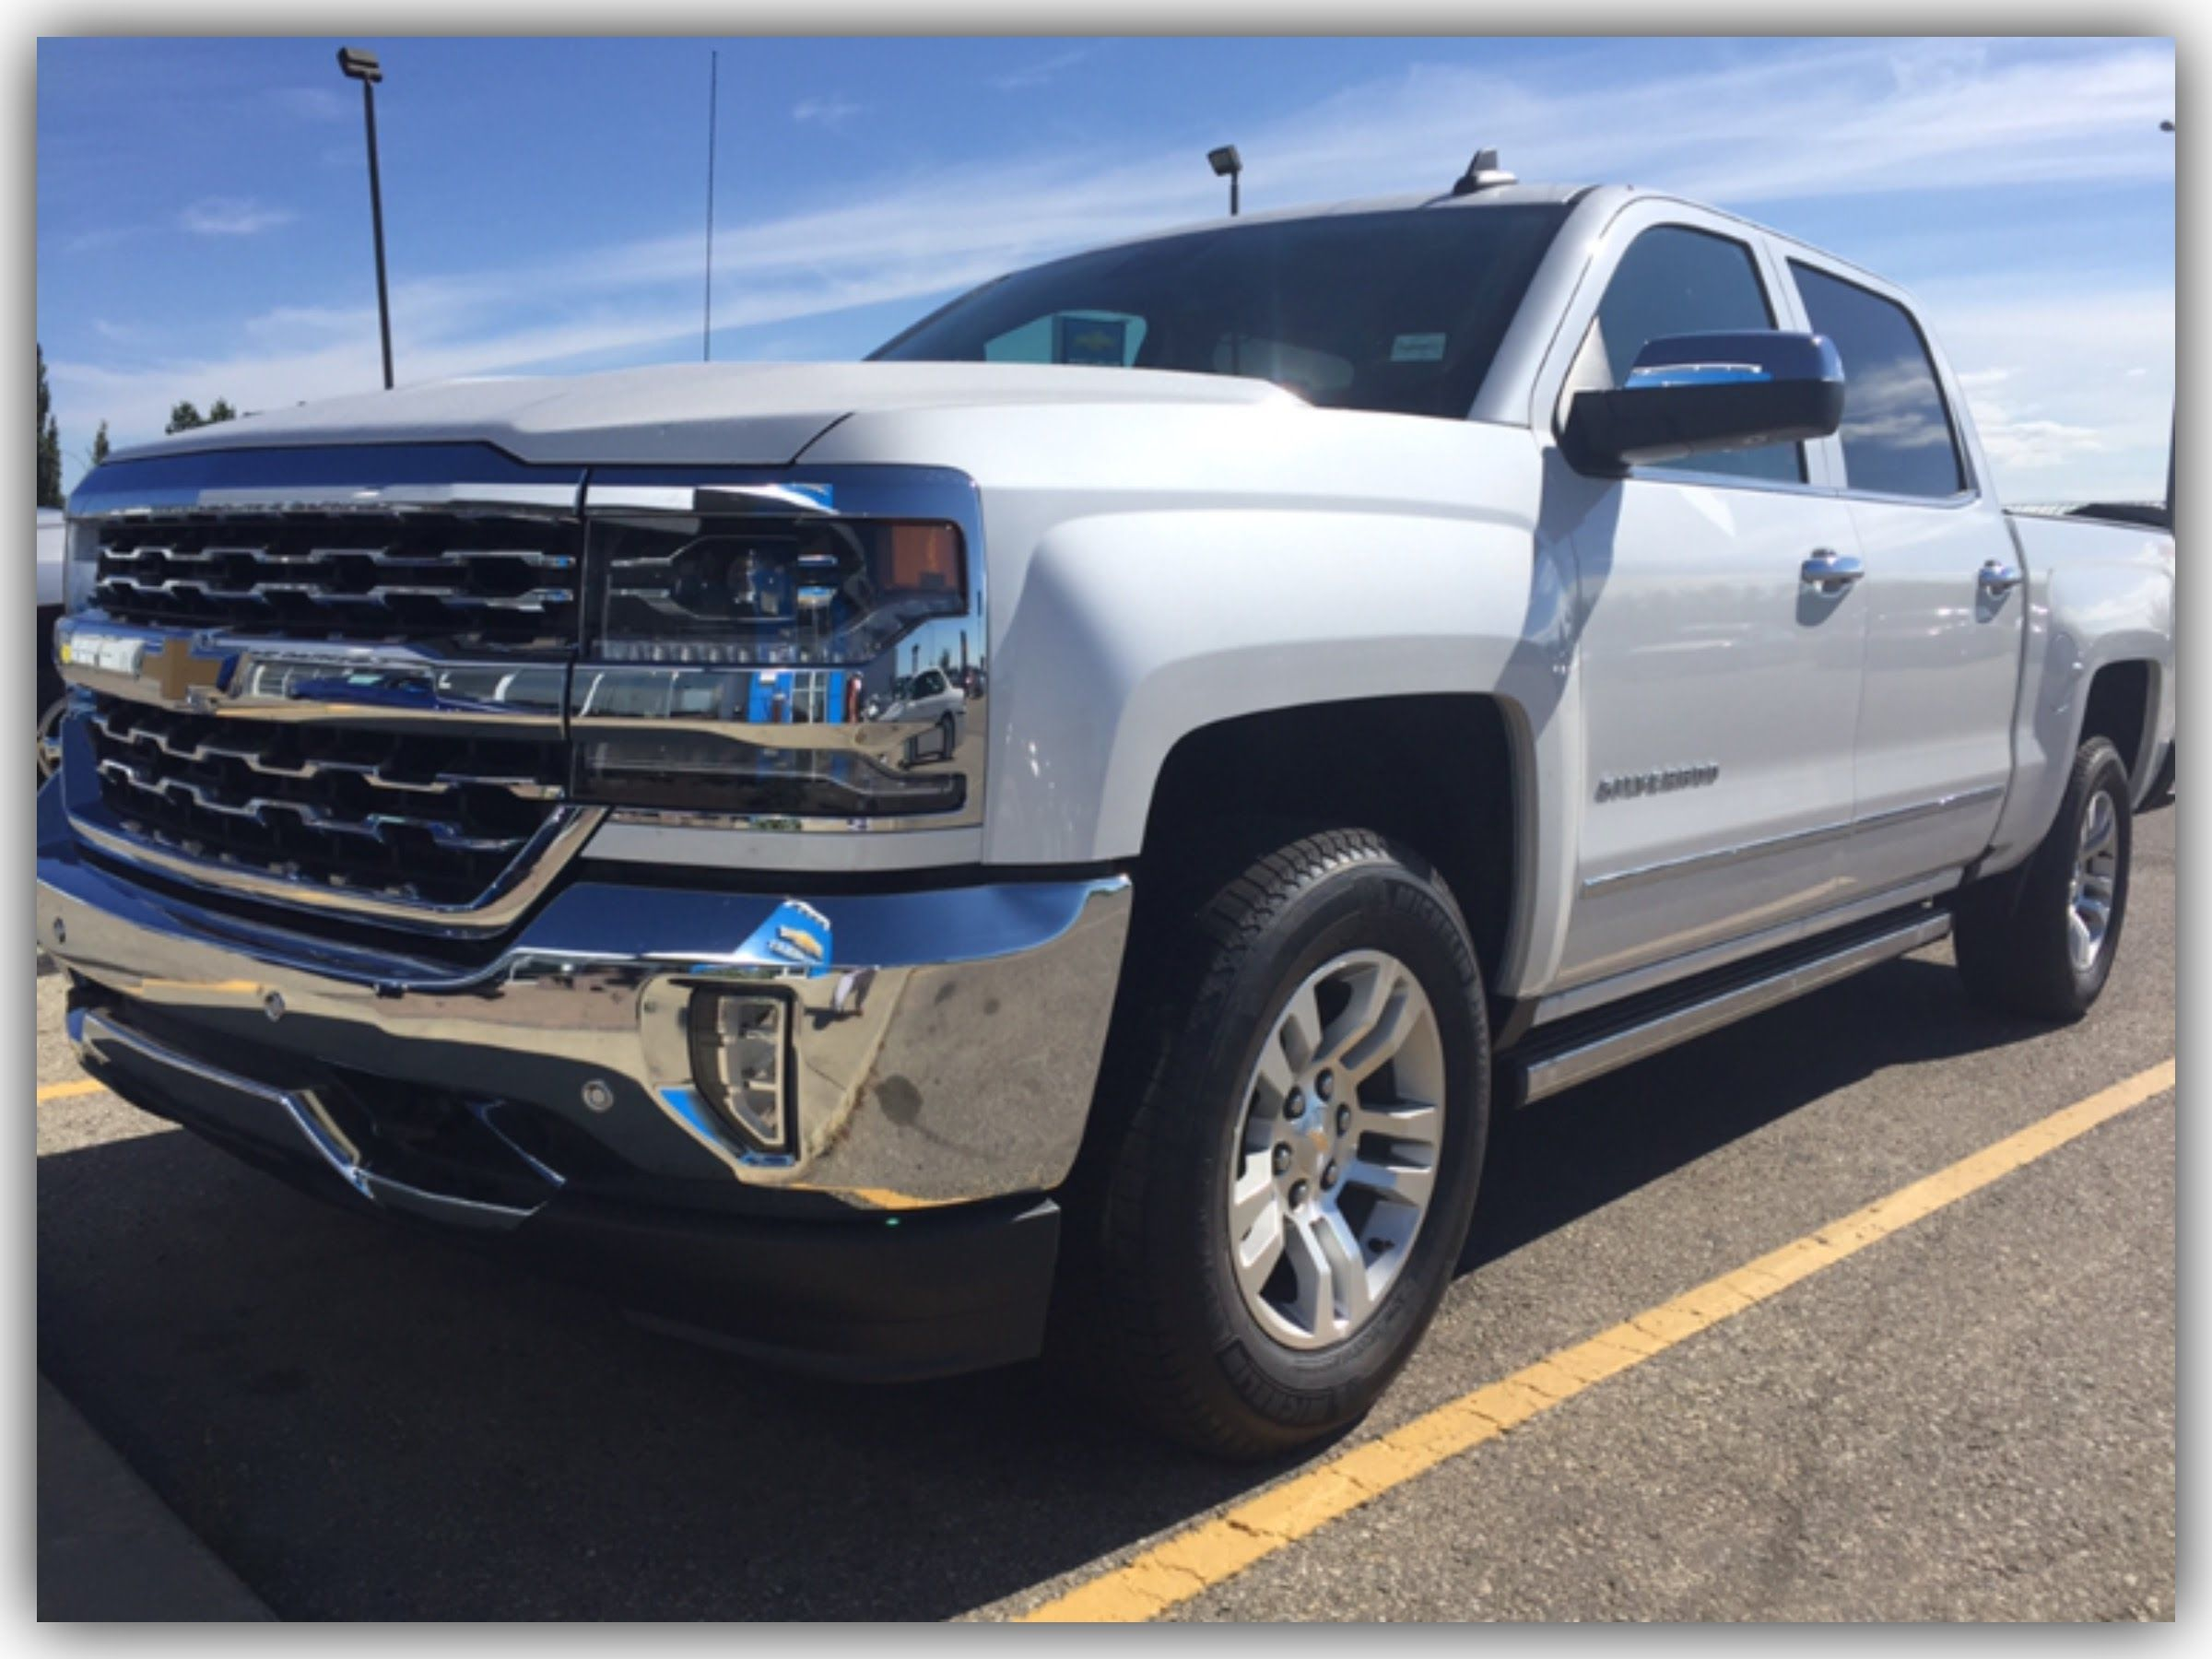 New 2017 Chevrolet Silverado 1500 White Leather Stock 17n007 2017 Chevrolet Silverado 1500 New Chevrolet Trucks Chevrolet Silverado